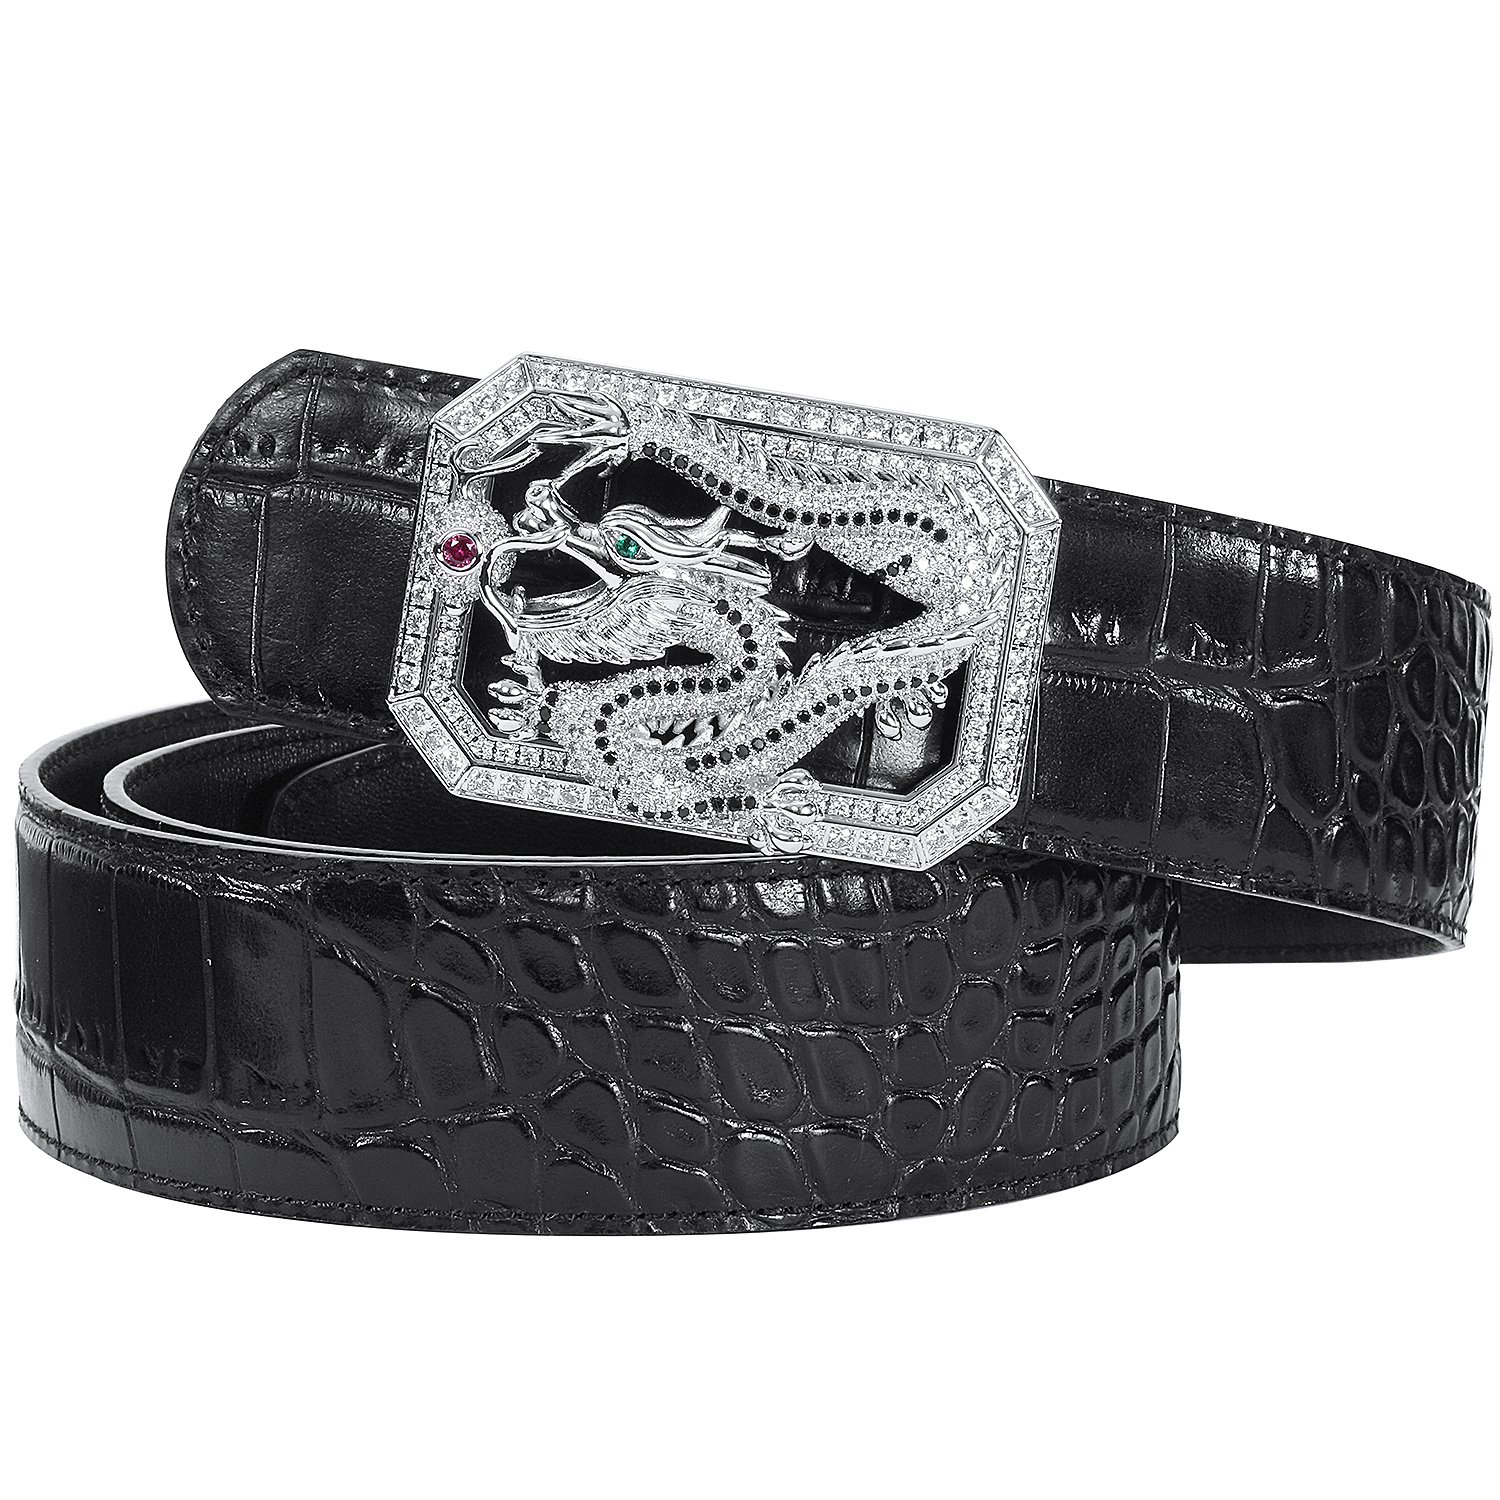 Men's Belts Luxury Genuine Leather Black Dress Belt for Men Dragon Plaque Buckle Alligator Pattern